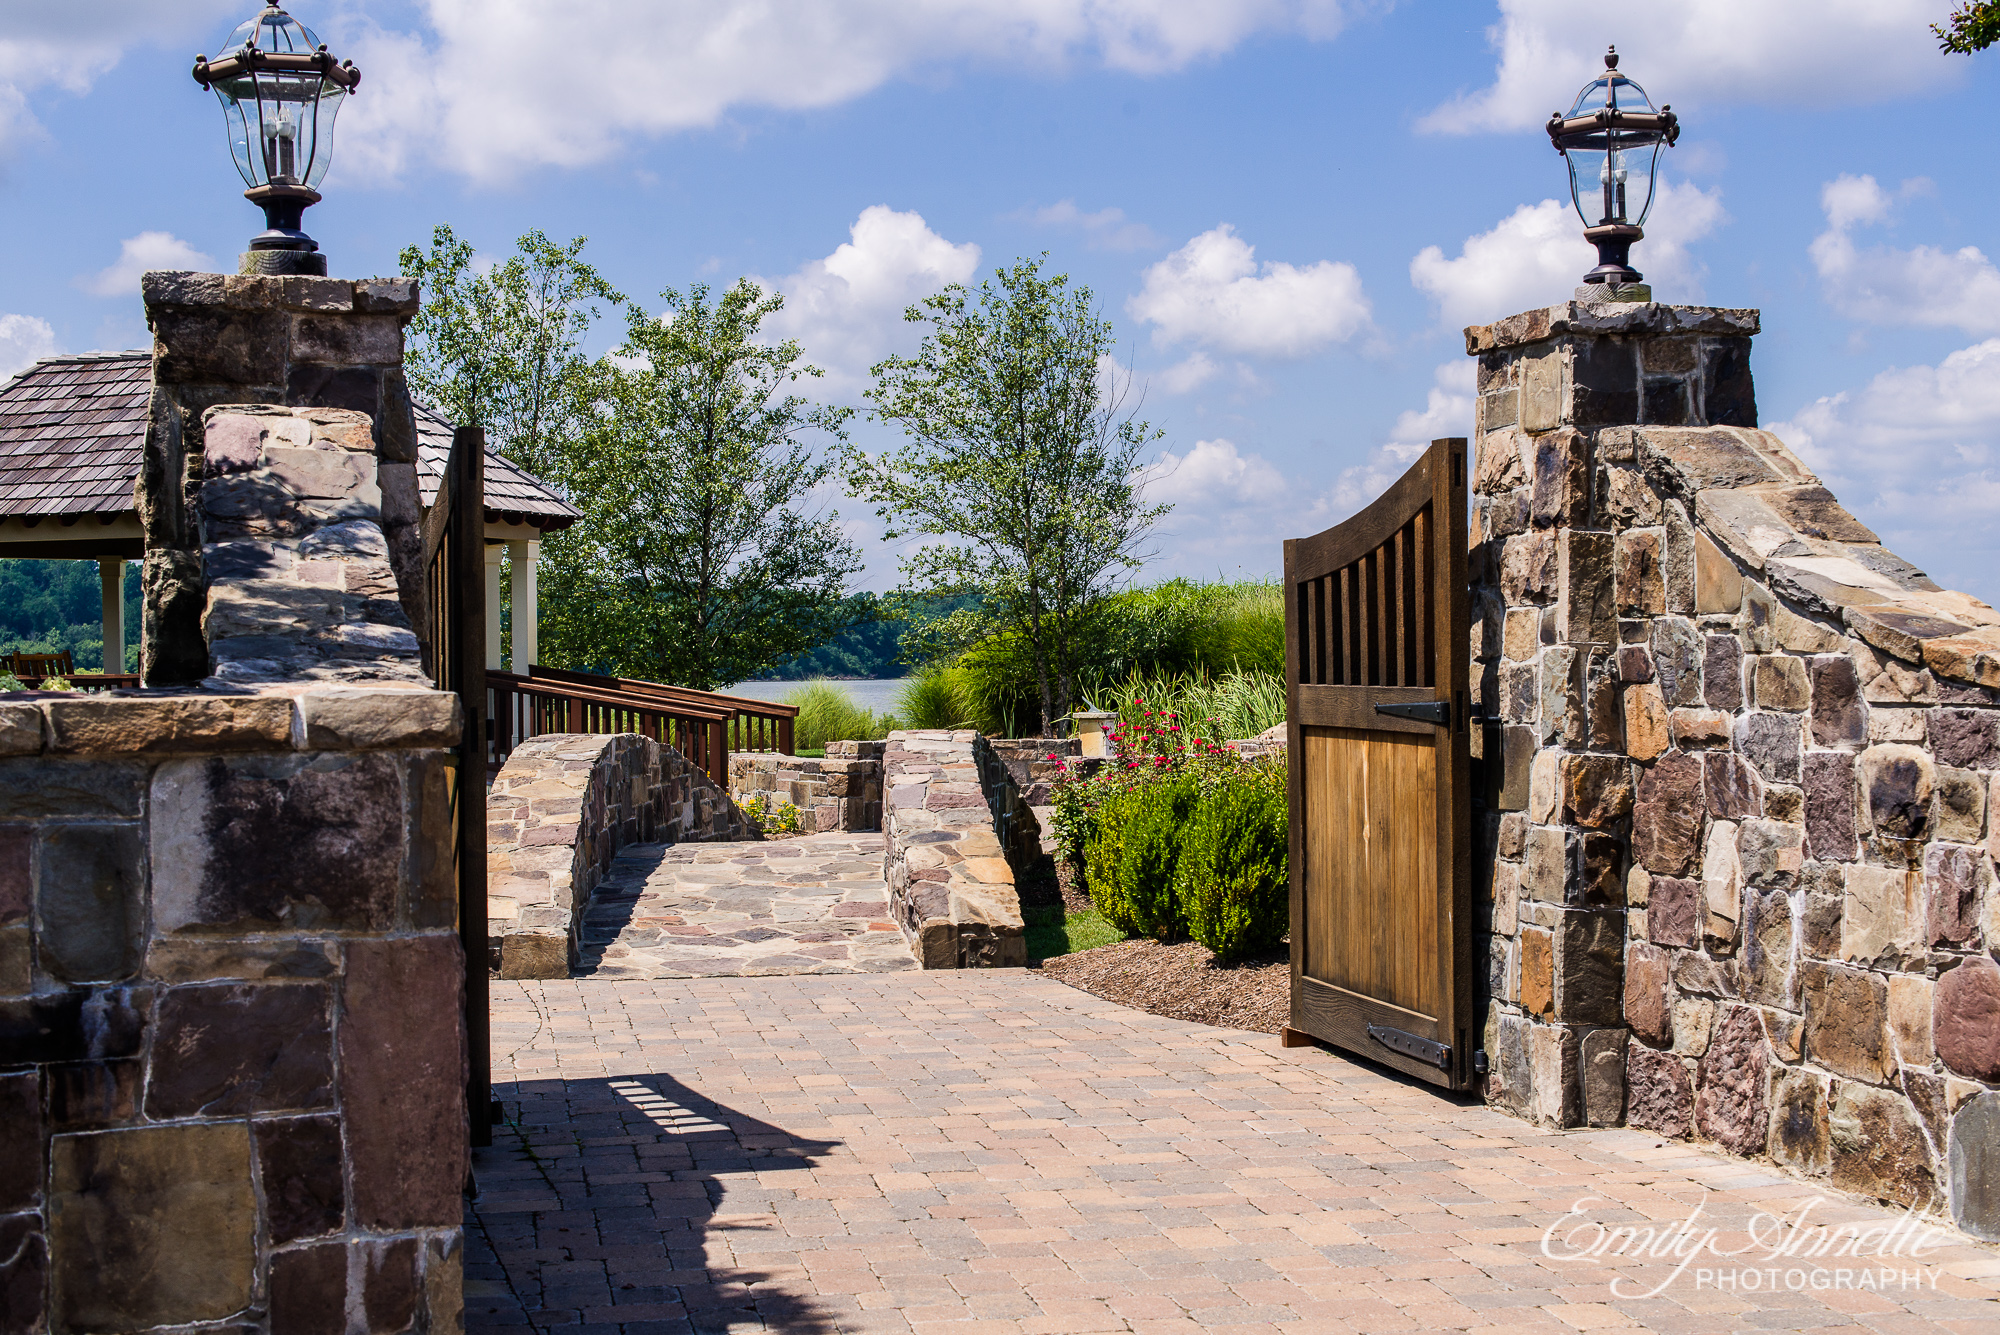 A beautiful view of a gate and stone bridge at Herrington on the Bay in North Beach, Maryland